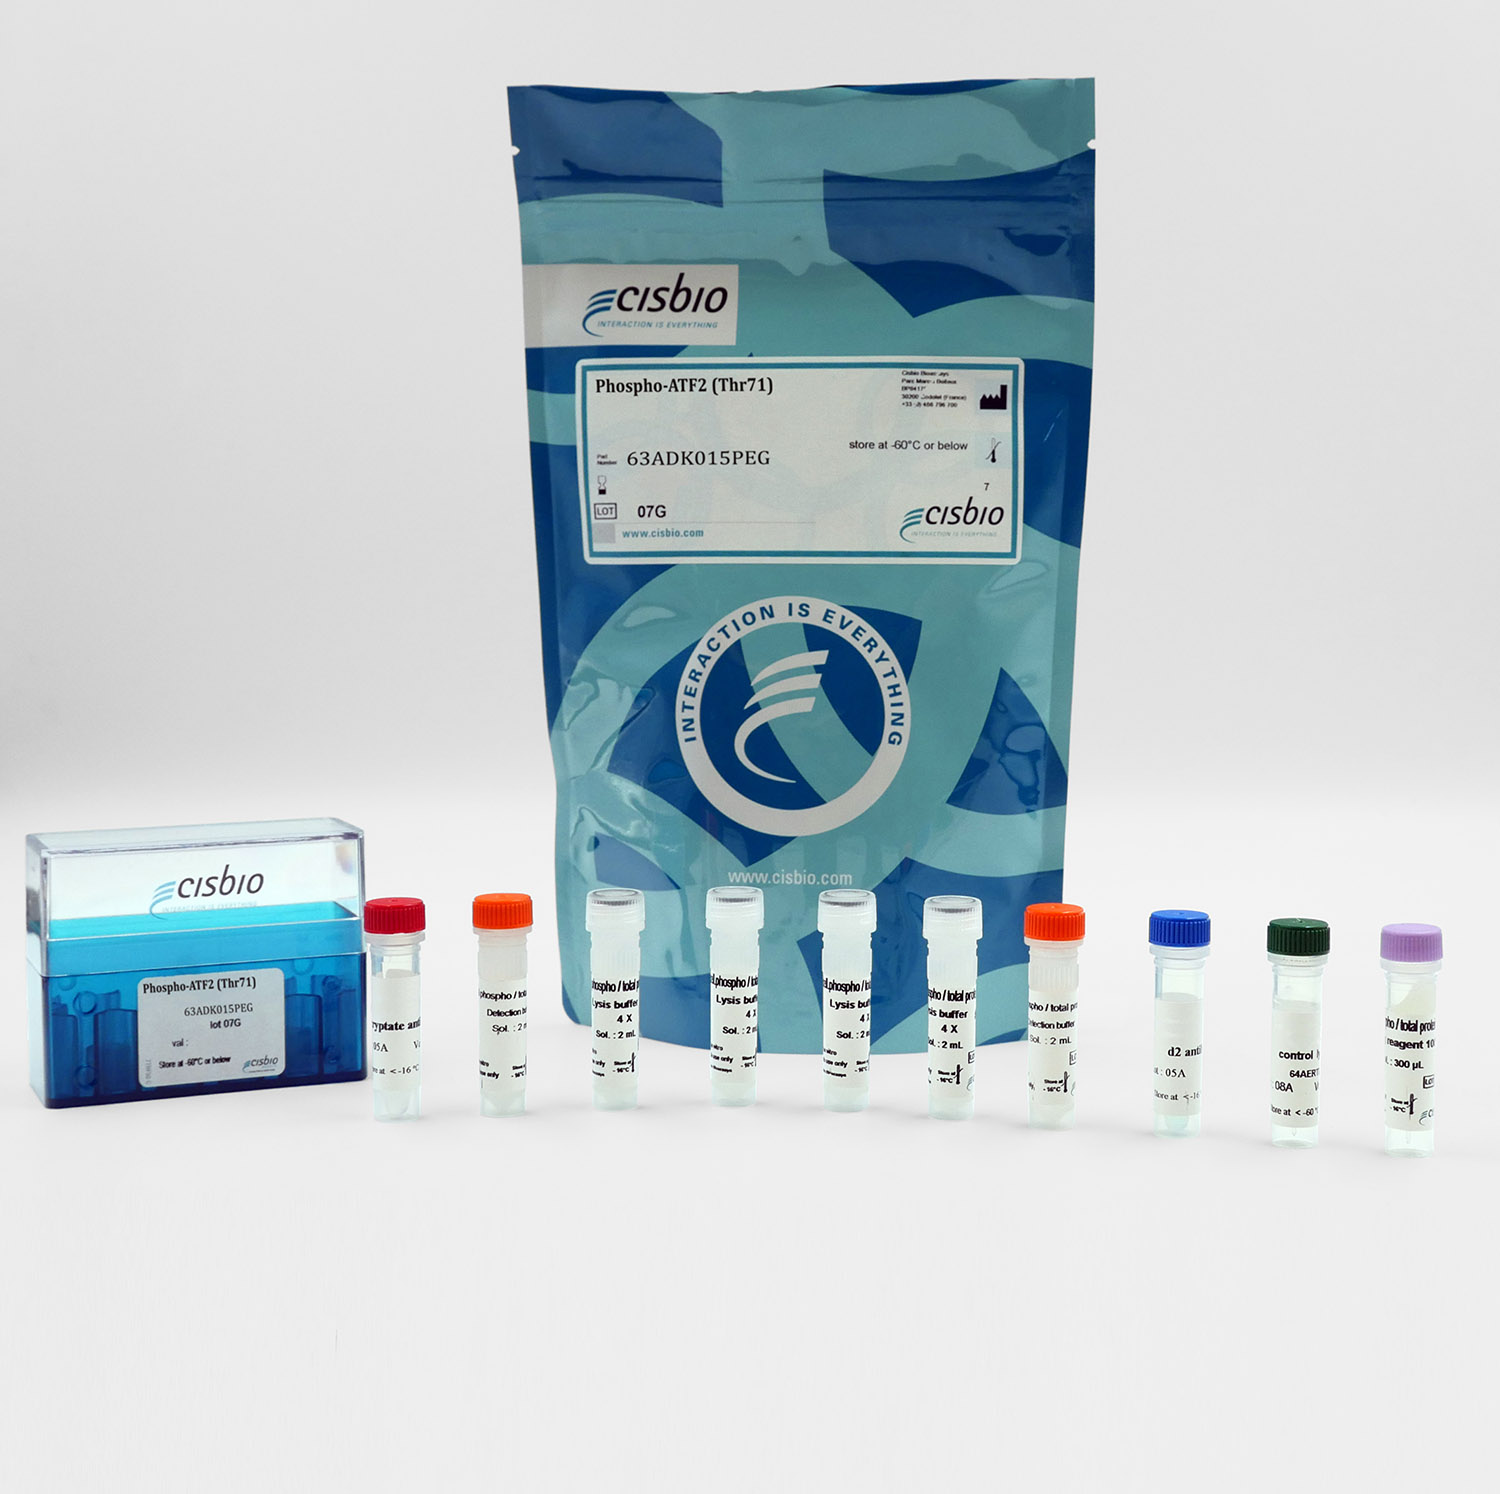 Phospho-ATF2 (Thr71) cellular kit